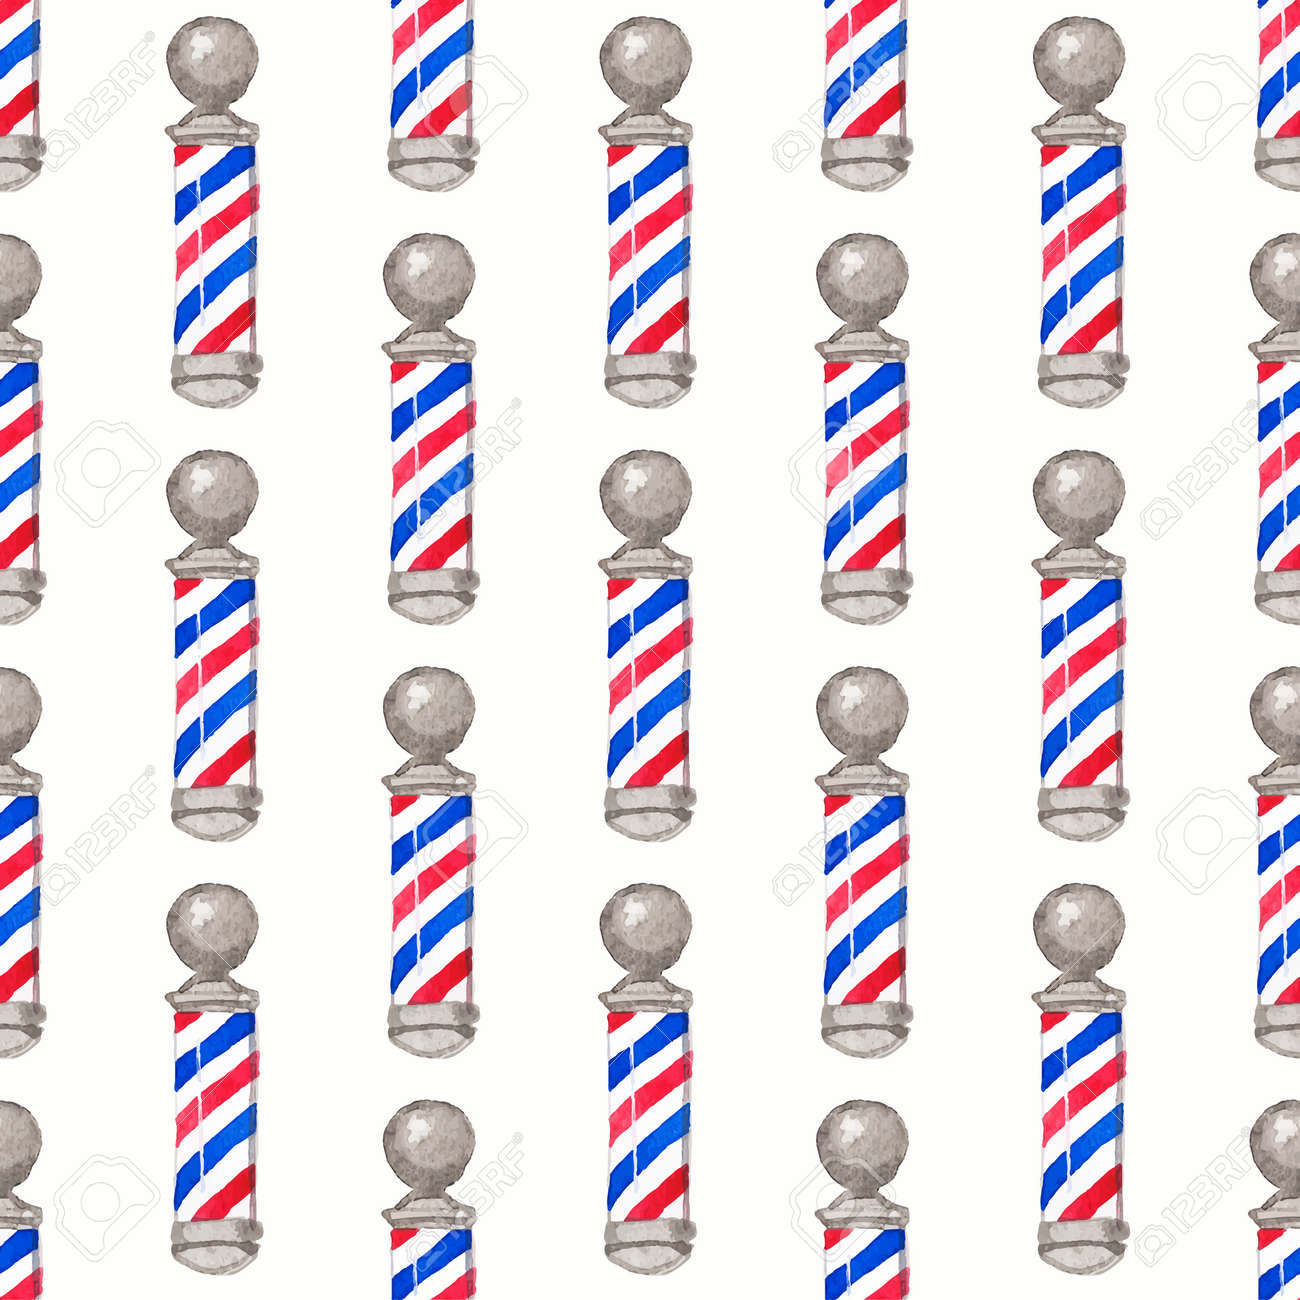 Barber Pole Seamless Watercolor Pattern With Poles On The White Background Aquarelle